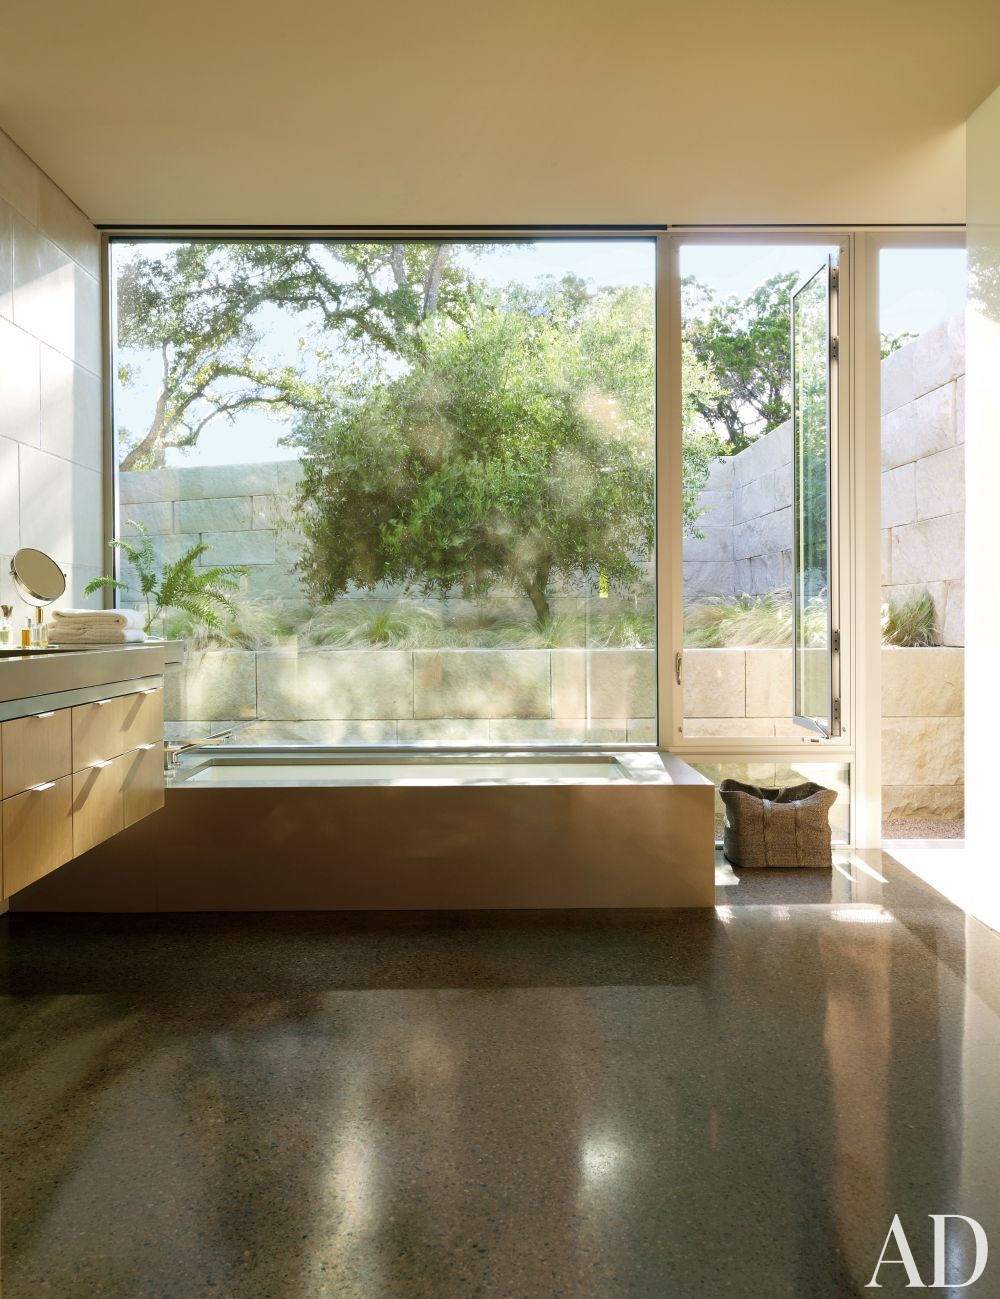 Modern Bathroom by Terry Hunziker Inc. and Lake | Flato Architects in Austin, Texas